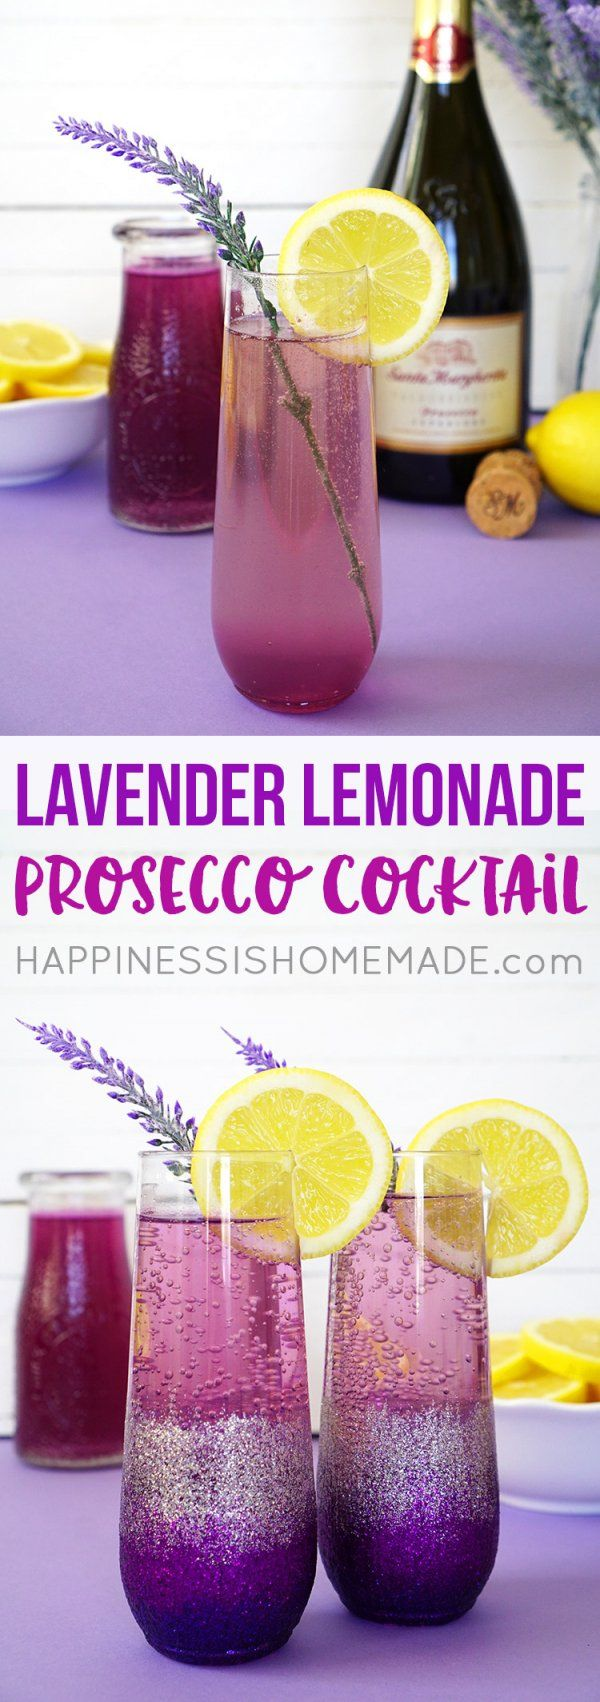 Lavender Lemonade Prosecco Cocktails + DIY Ombre Glitter Champagne Glasses are the perfect pair for a Sunday Brunch with your favorite girlfriends!